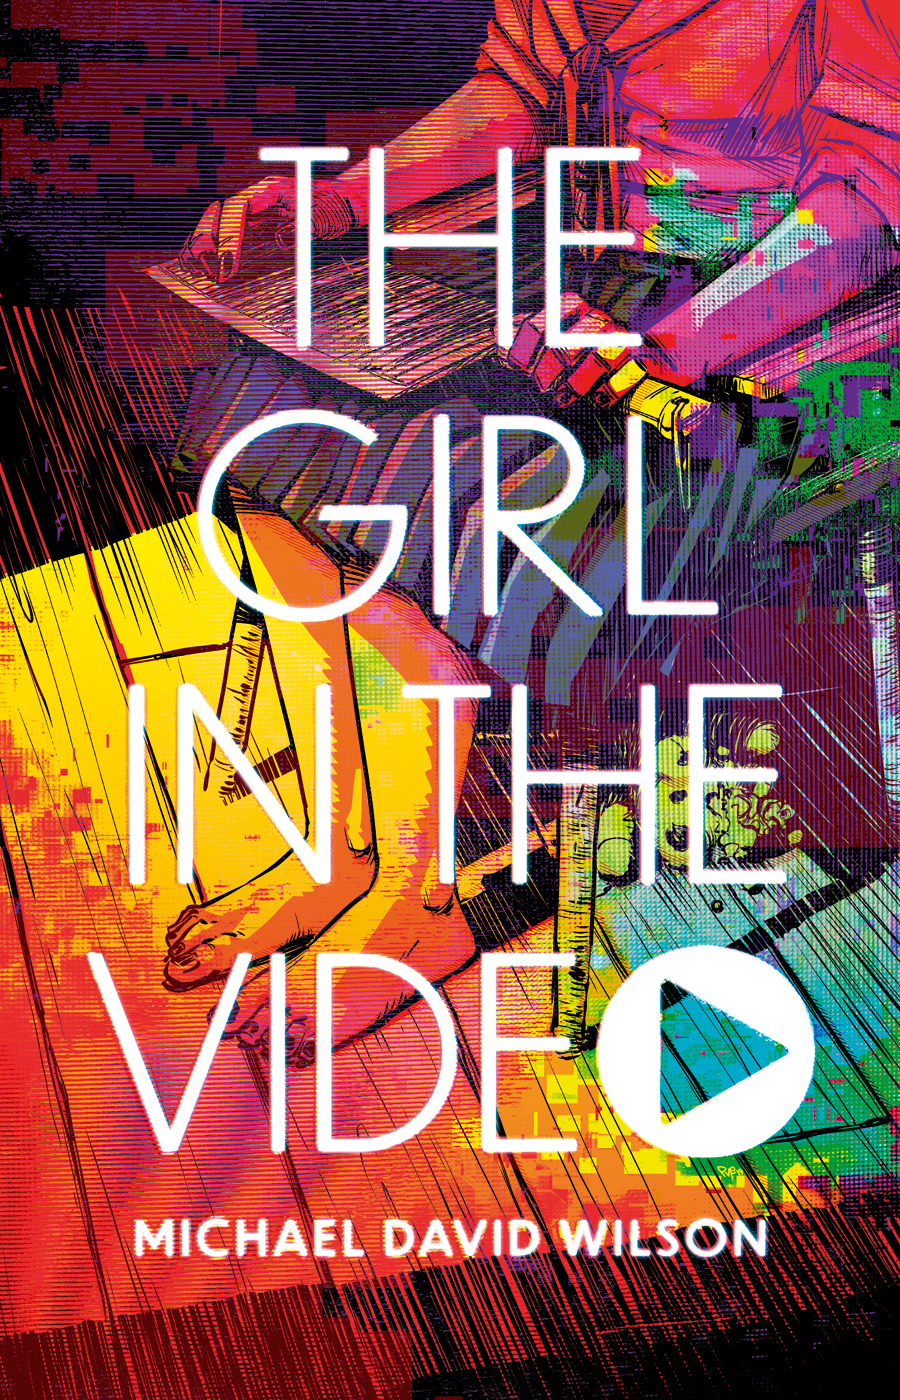 The Girl in the Video by Michael David Wilson